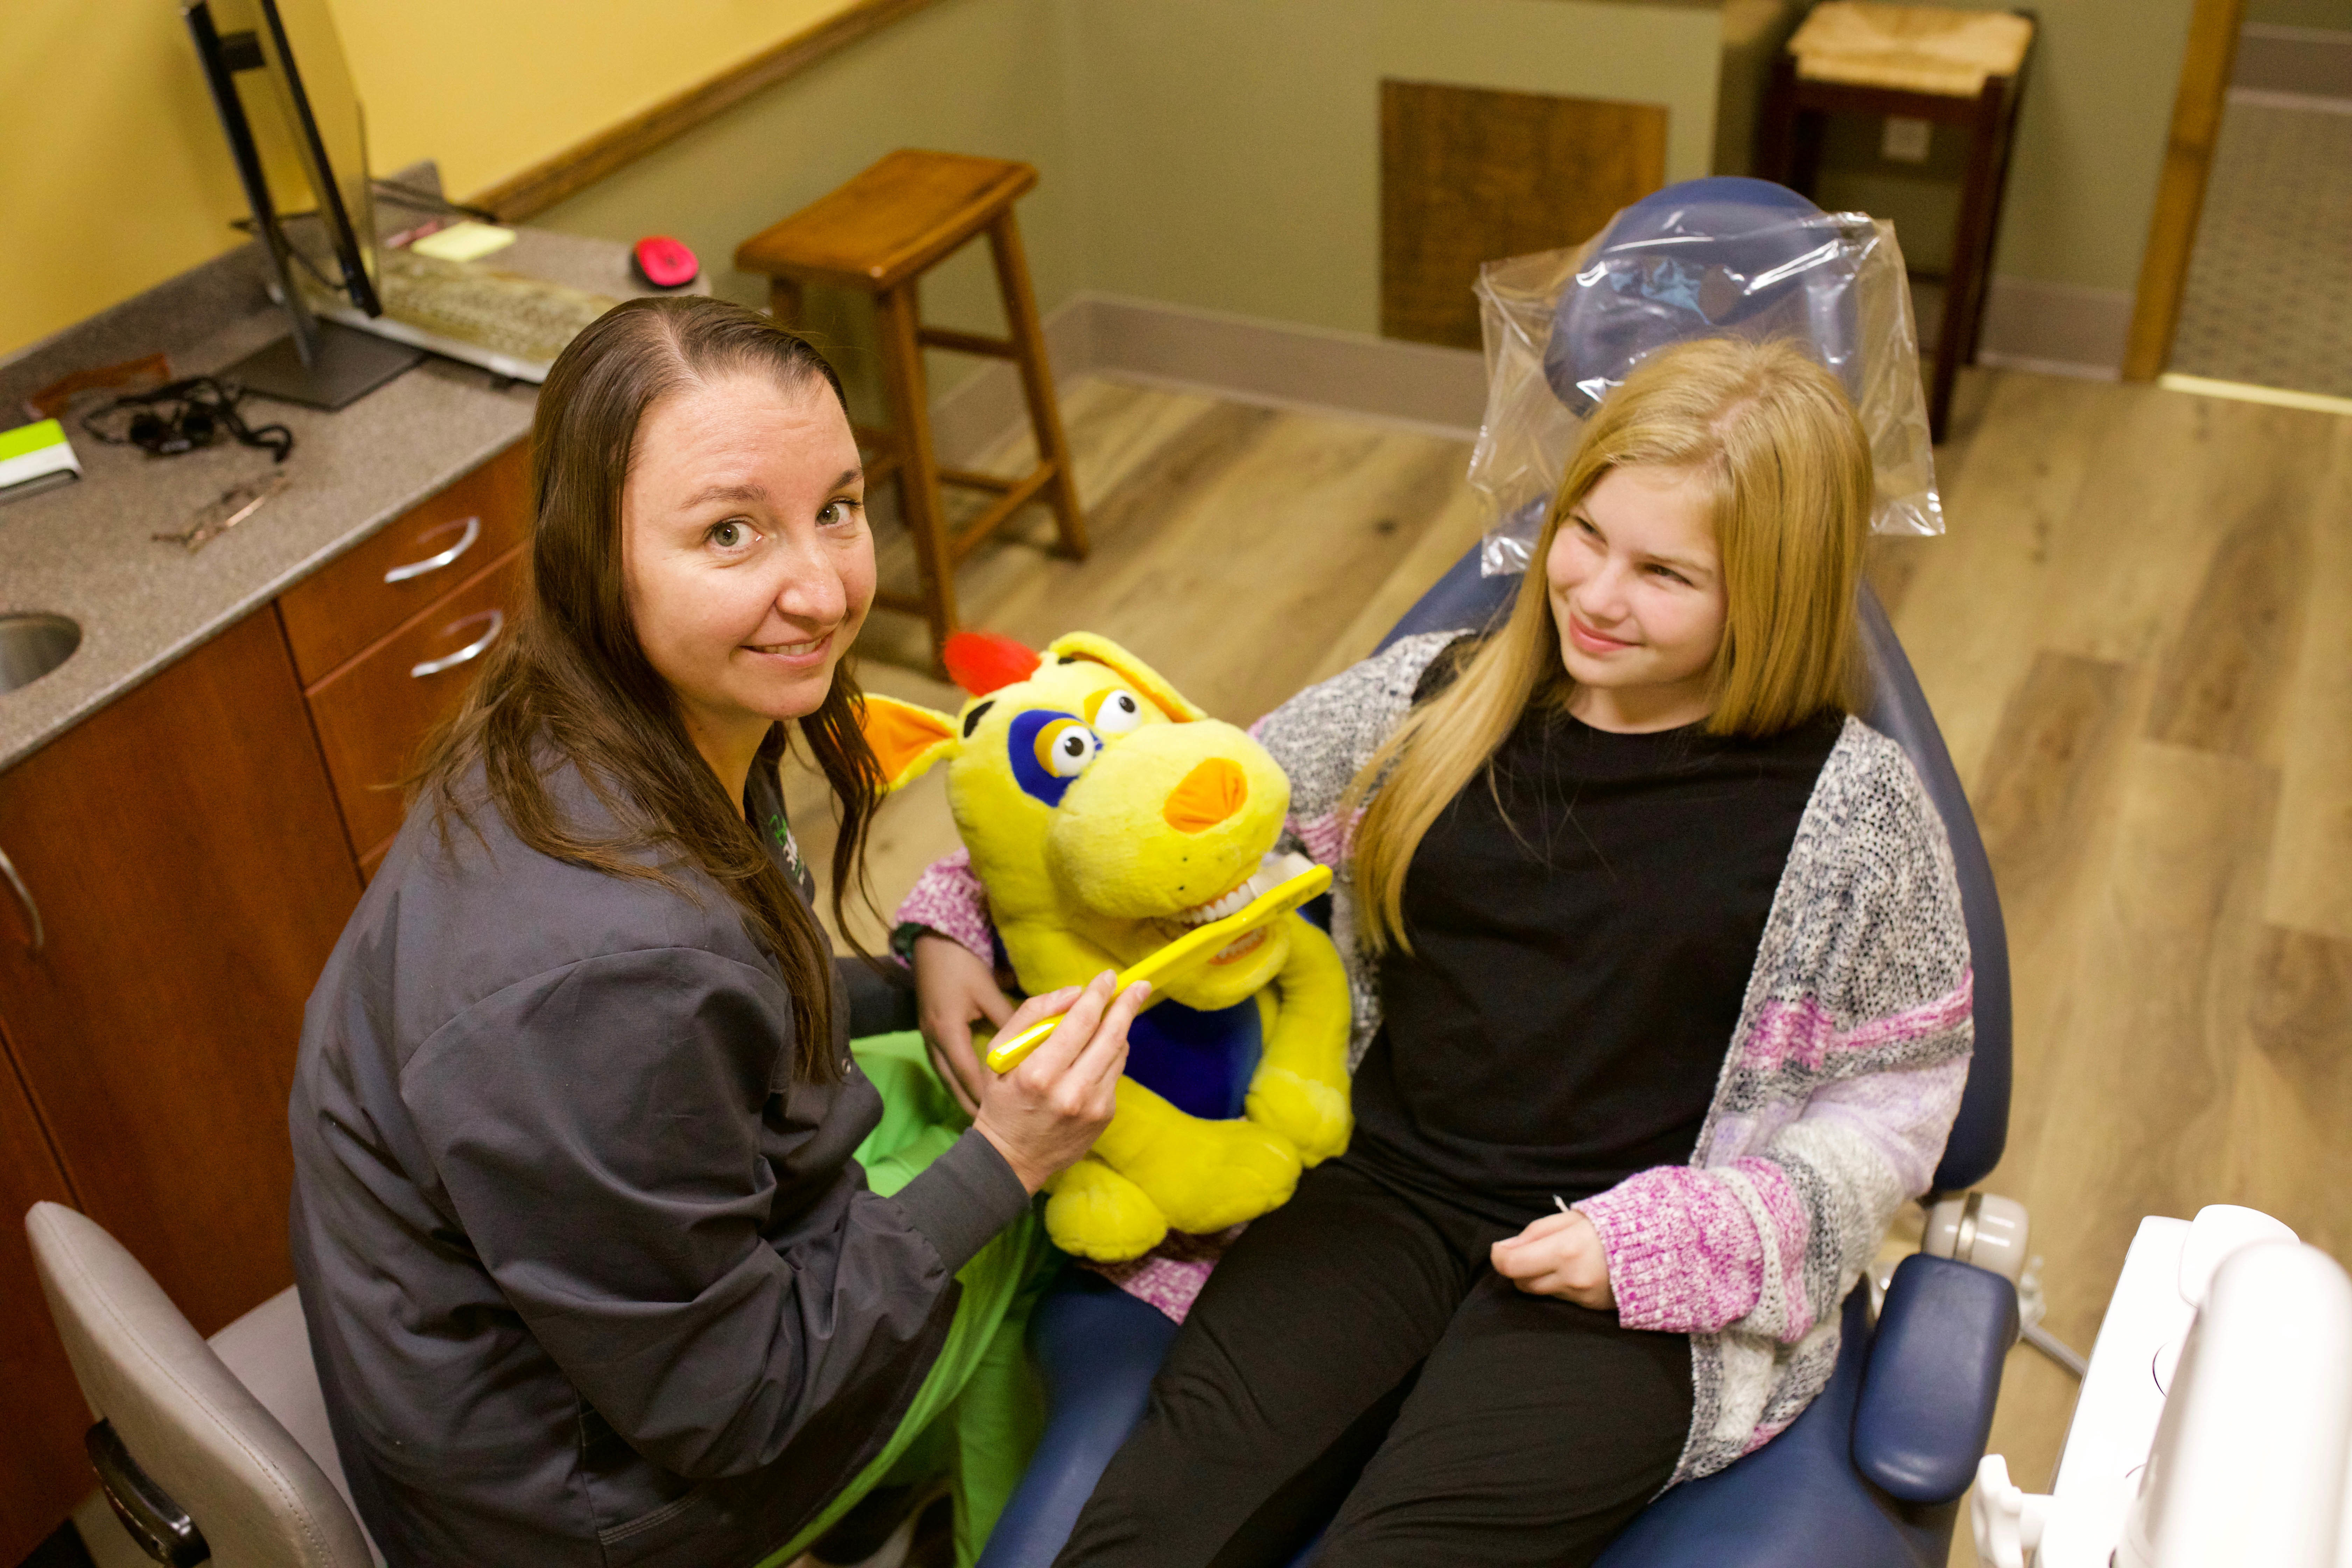 Carrie showing a patient how to brush using the Dog puppet.